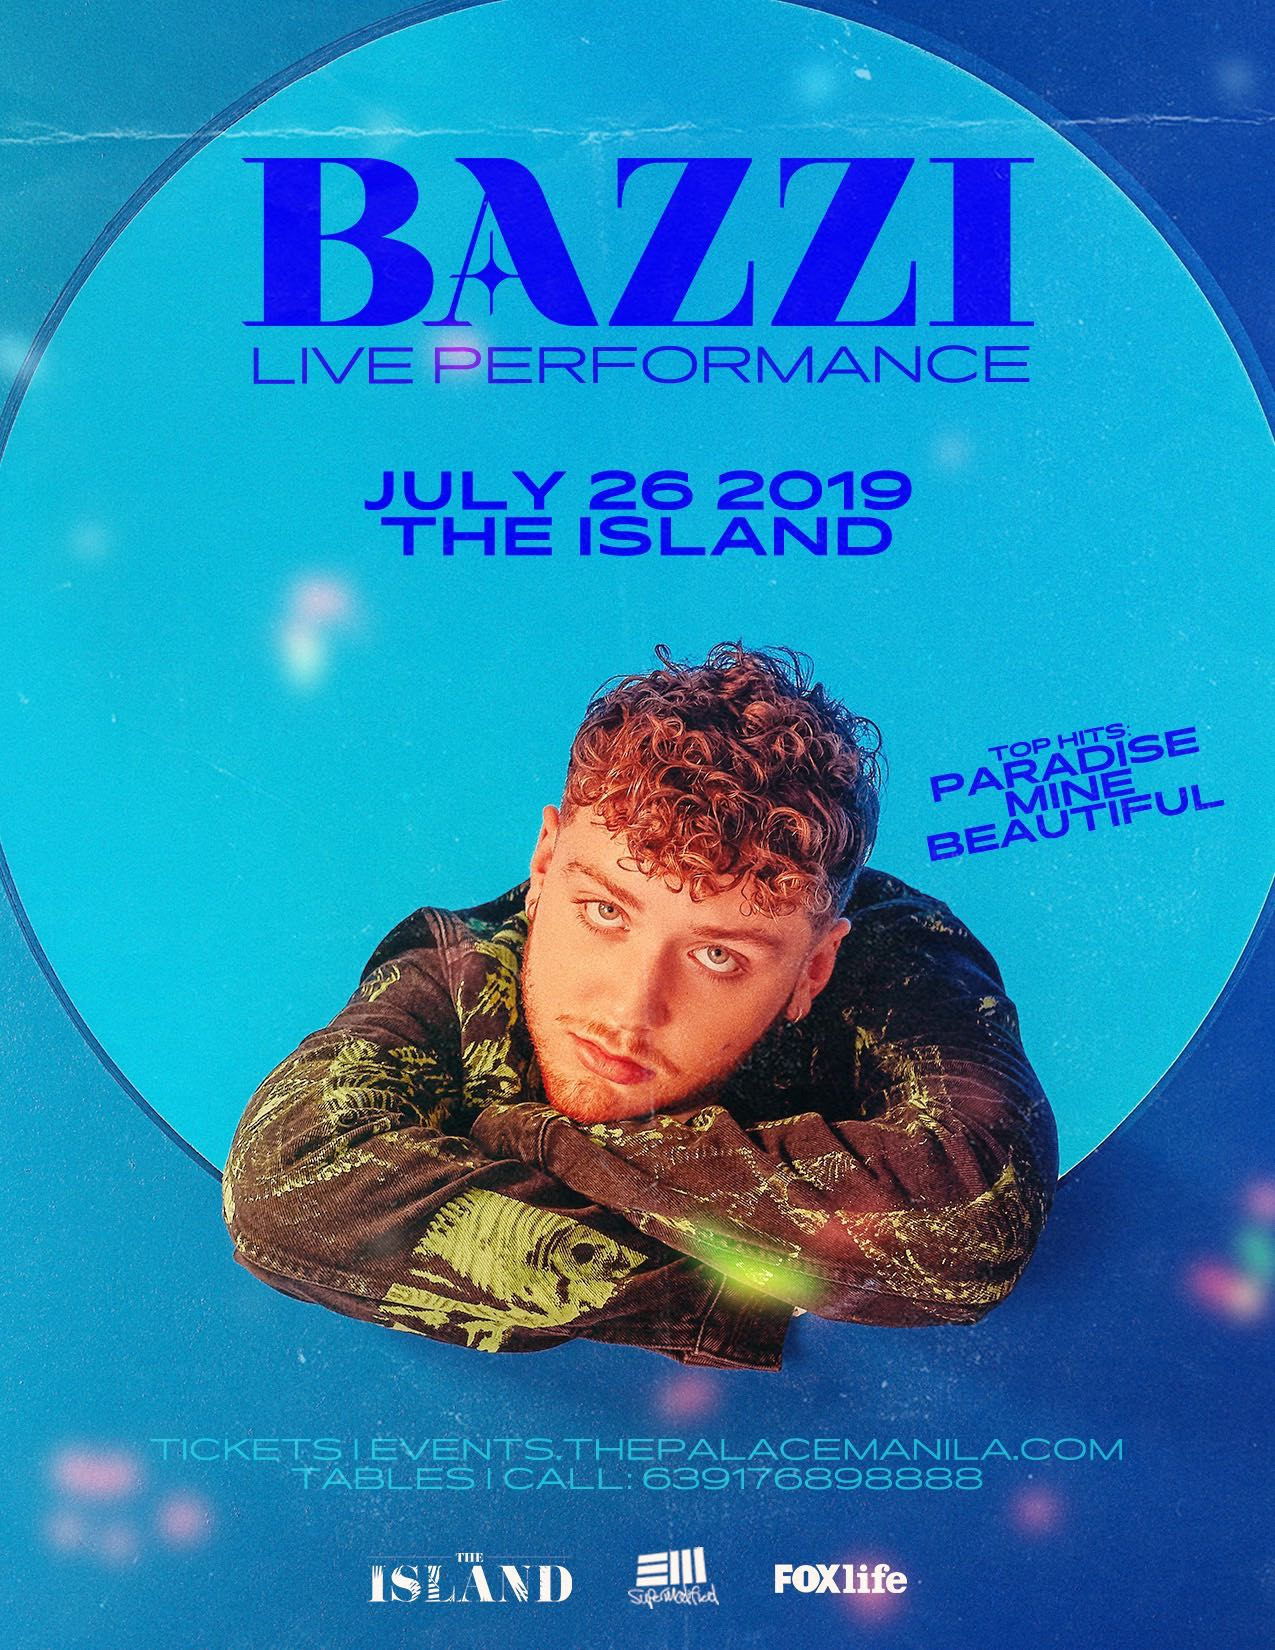 BAZZI at The Island